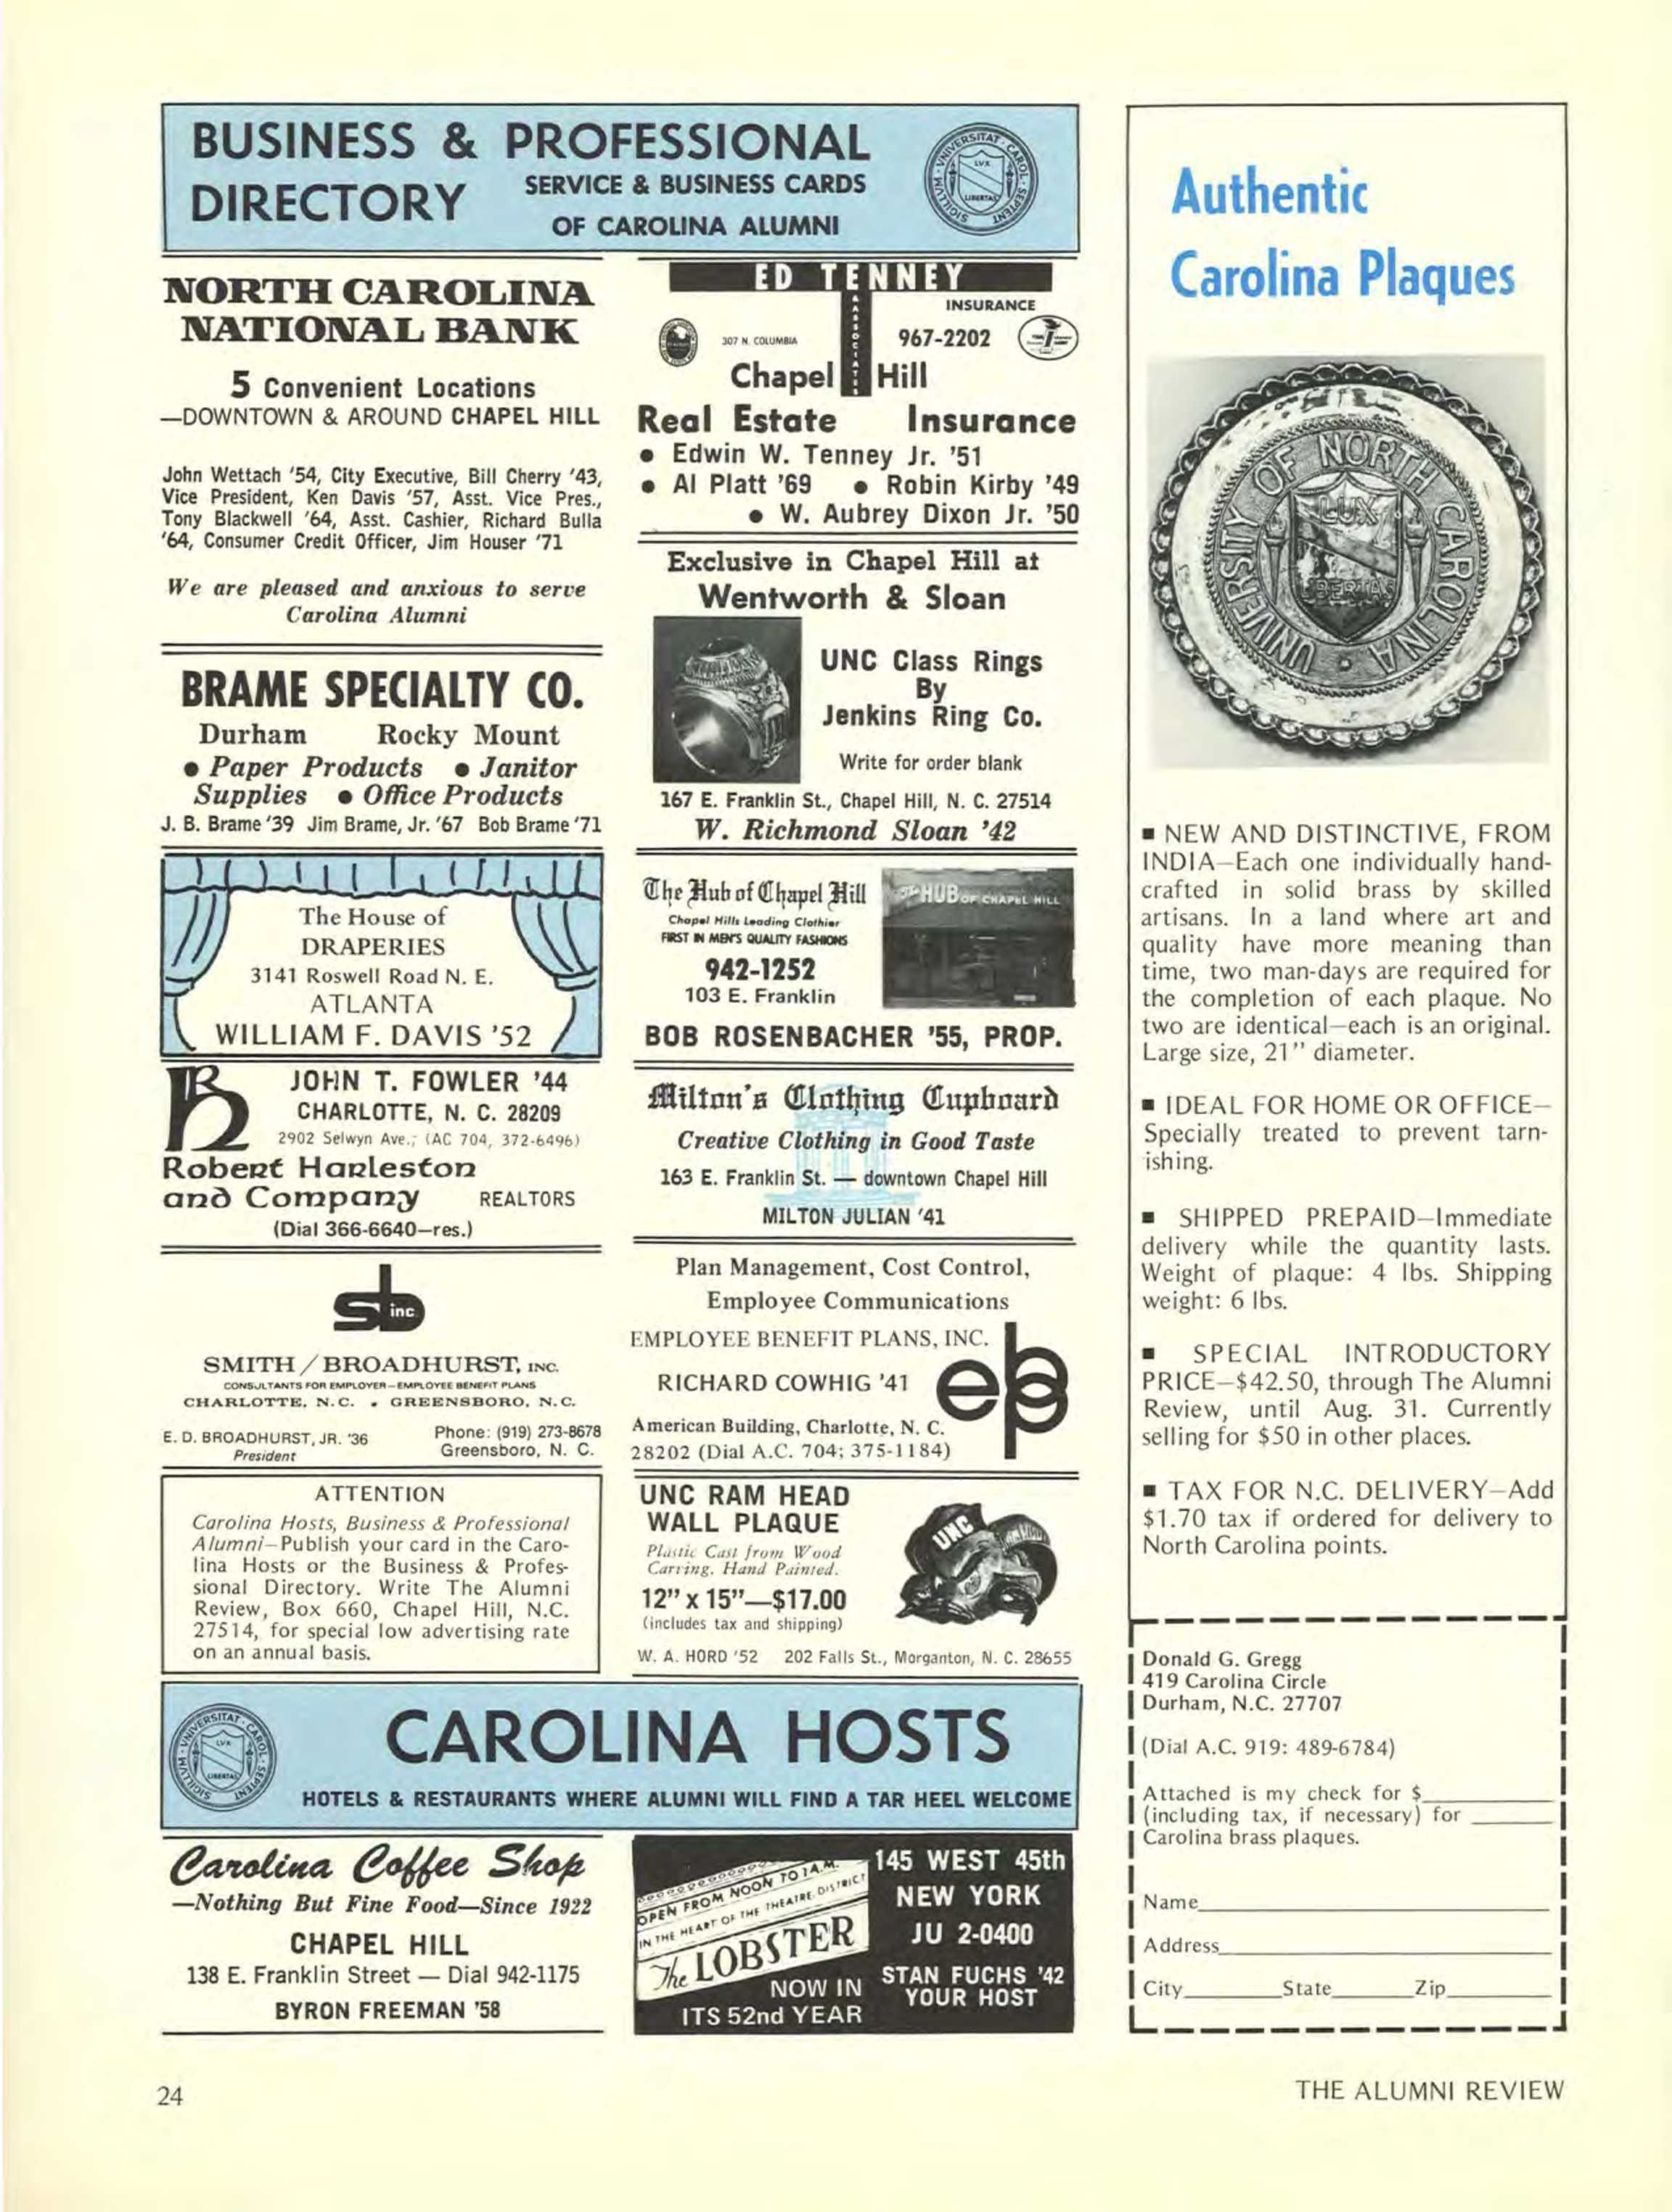 Carolina Alumni Review May 1972 Page C3 Freeman Apel 24